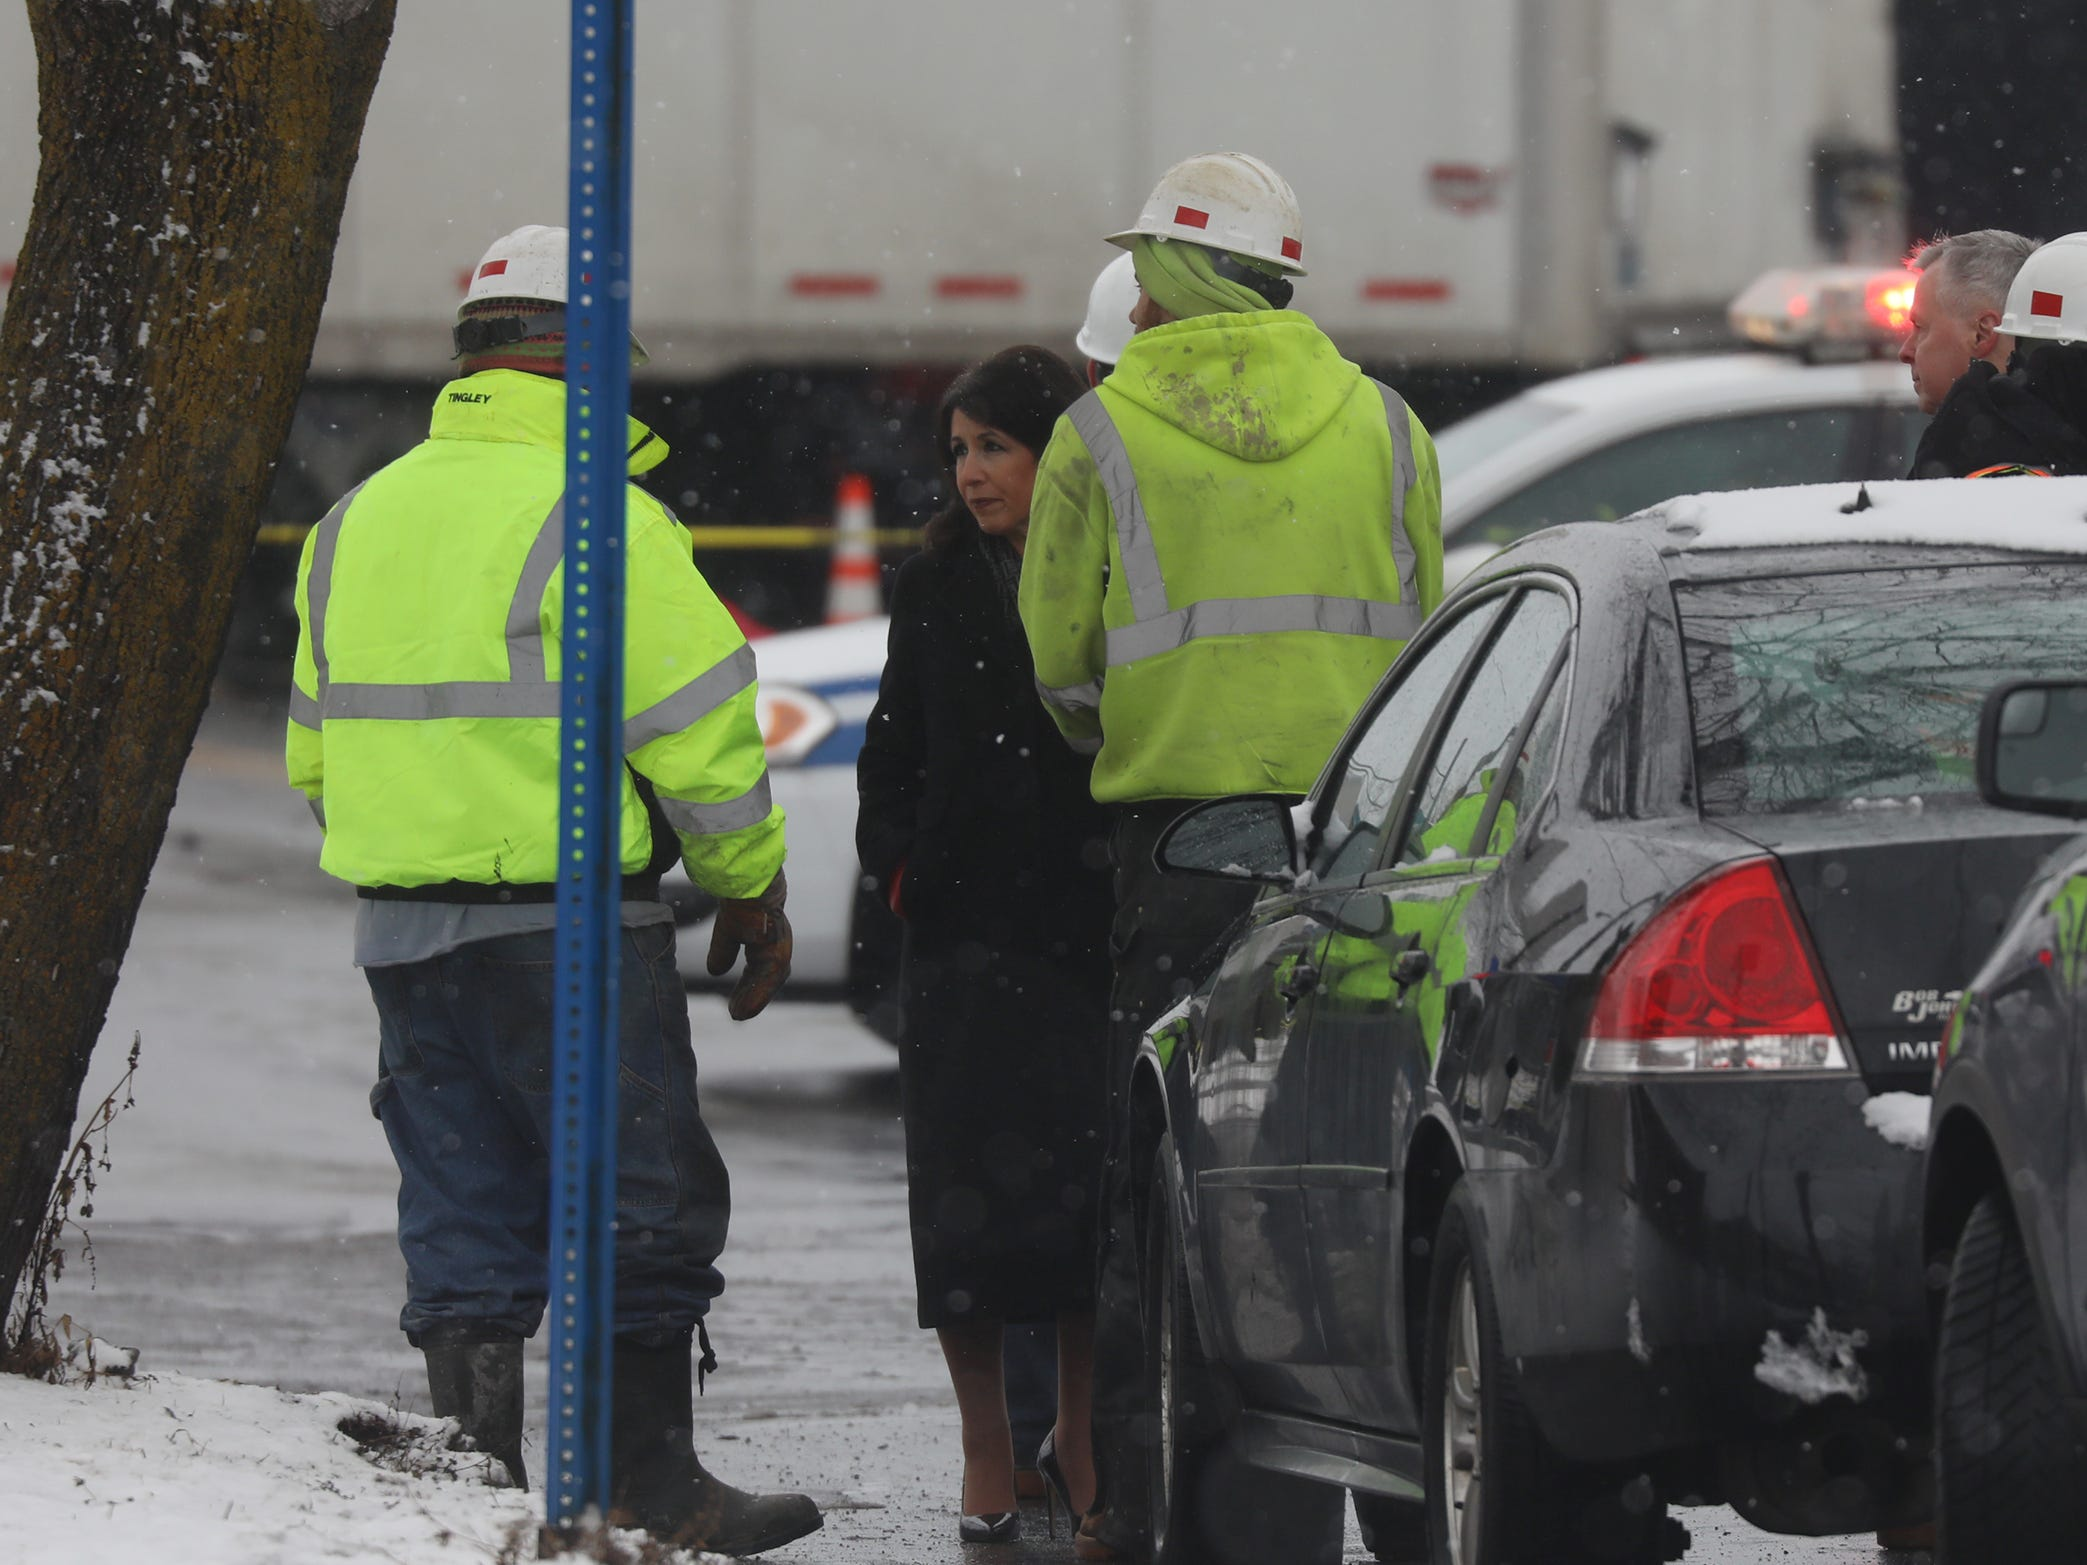 Monroe County Executive Cheryl Dinolfo came to the site of the crash and talked with workers on scene.